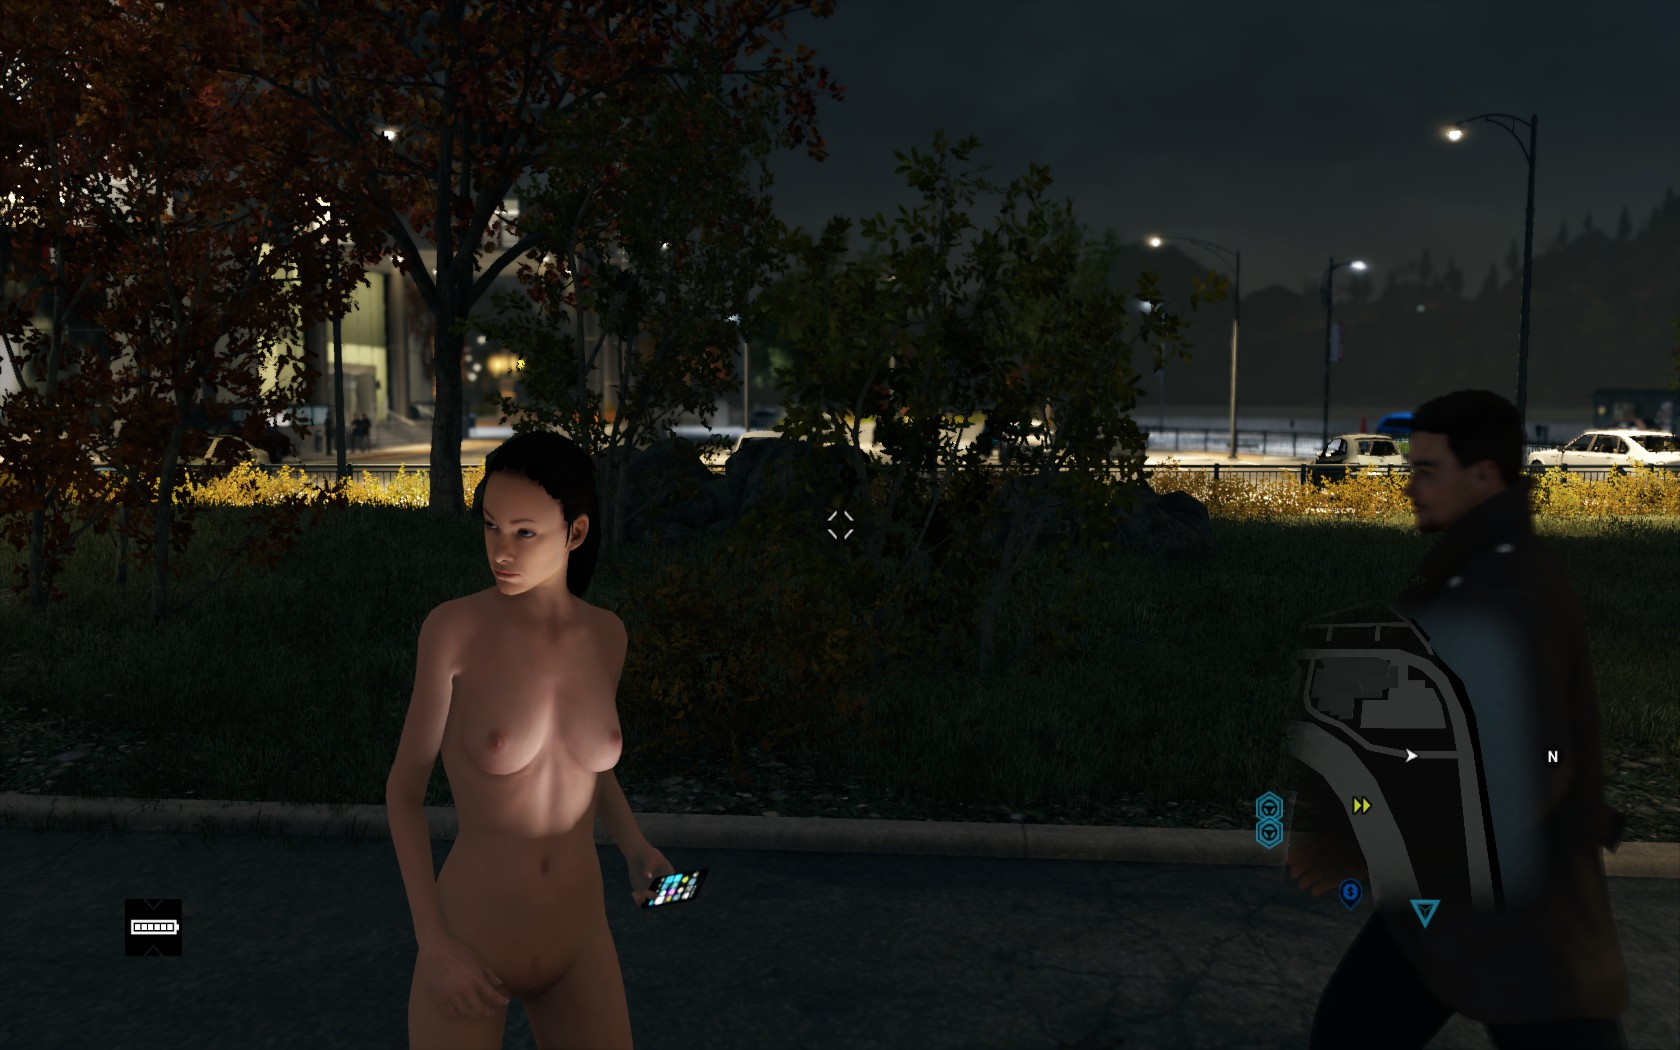 Gta 5 nudity uncensored hentai pictures